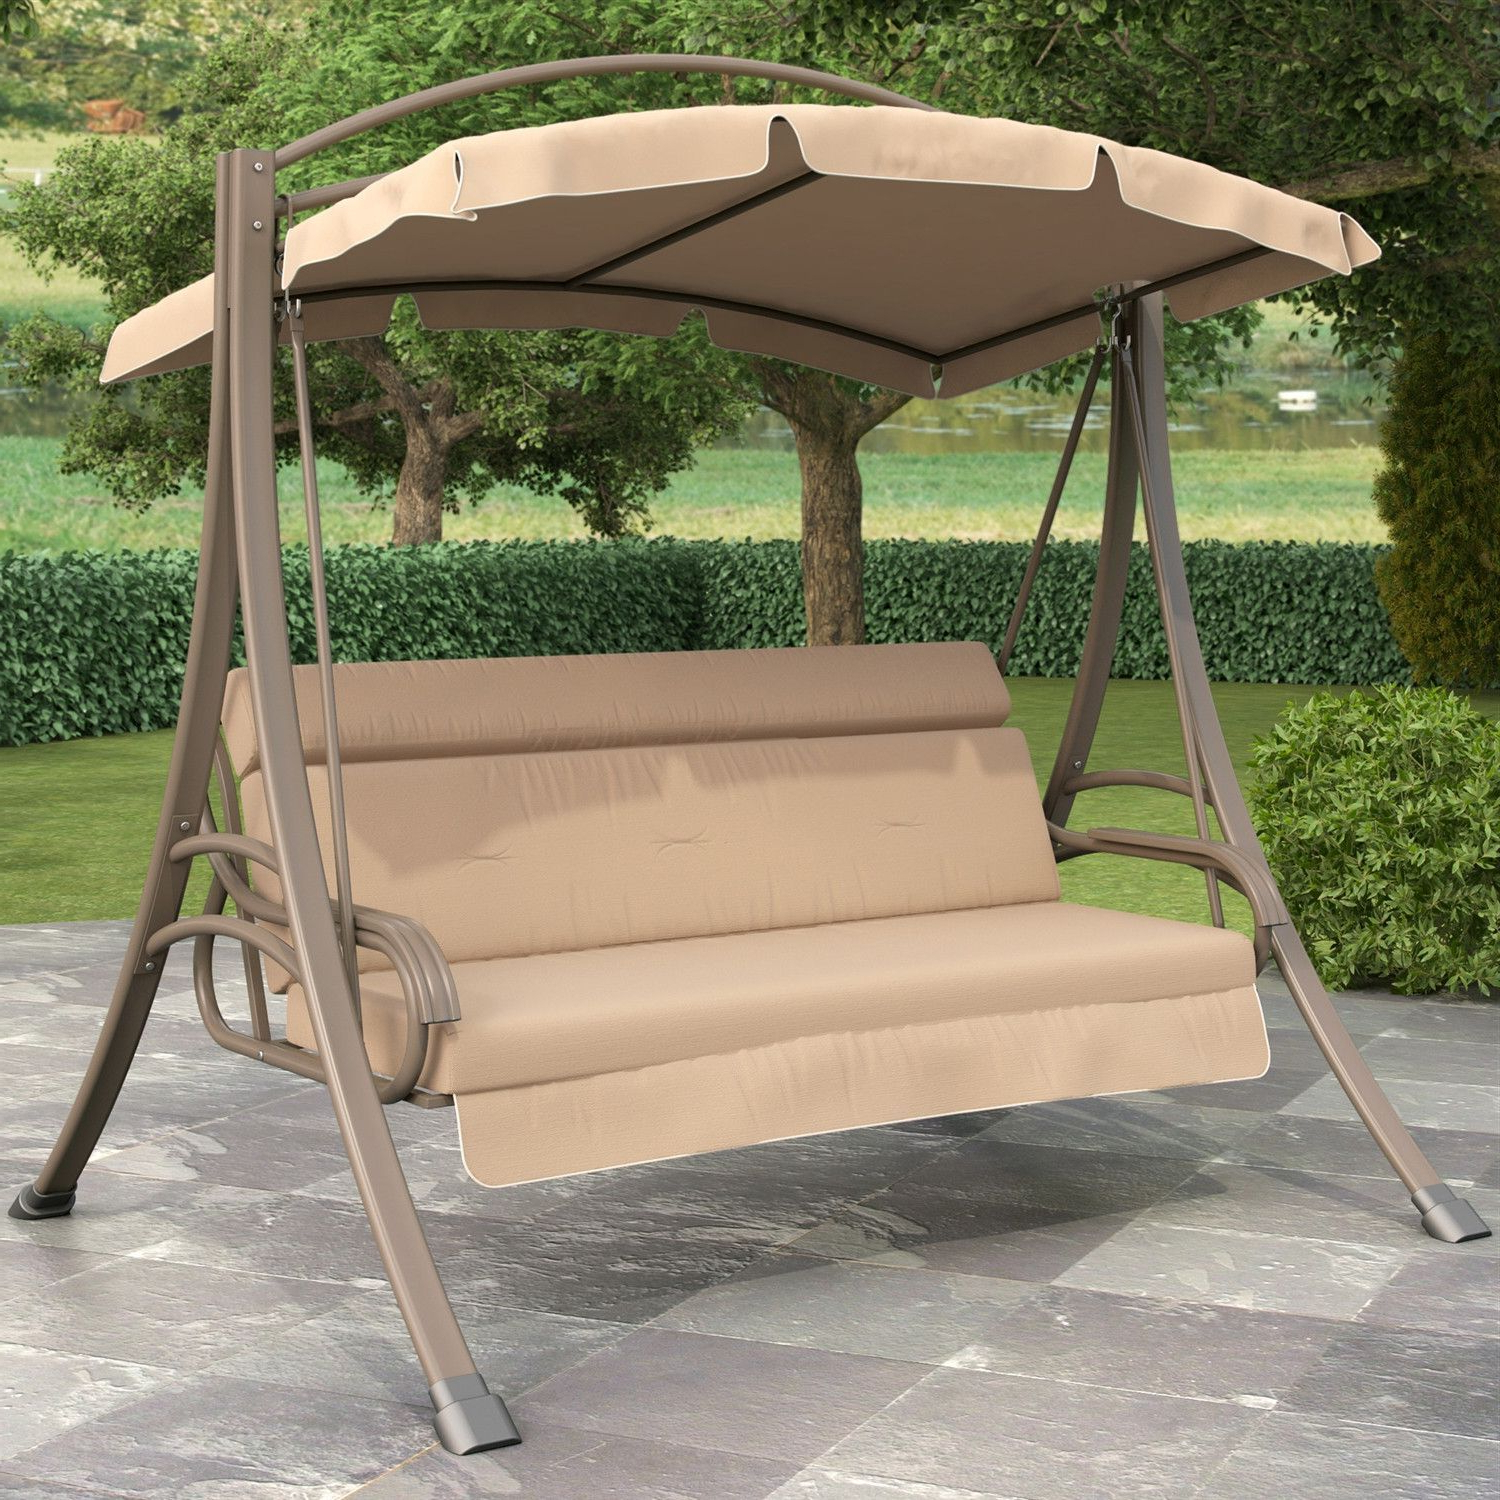 Preferred 3 Person Brown Steel Outdoor Swings Throughout 3 Person Outdoor Porch Swing With Canopy In Beige Tan Brown (View 10 of 30)